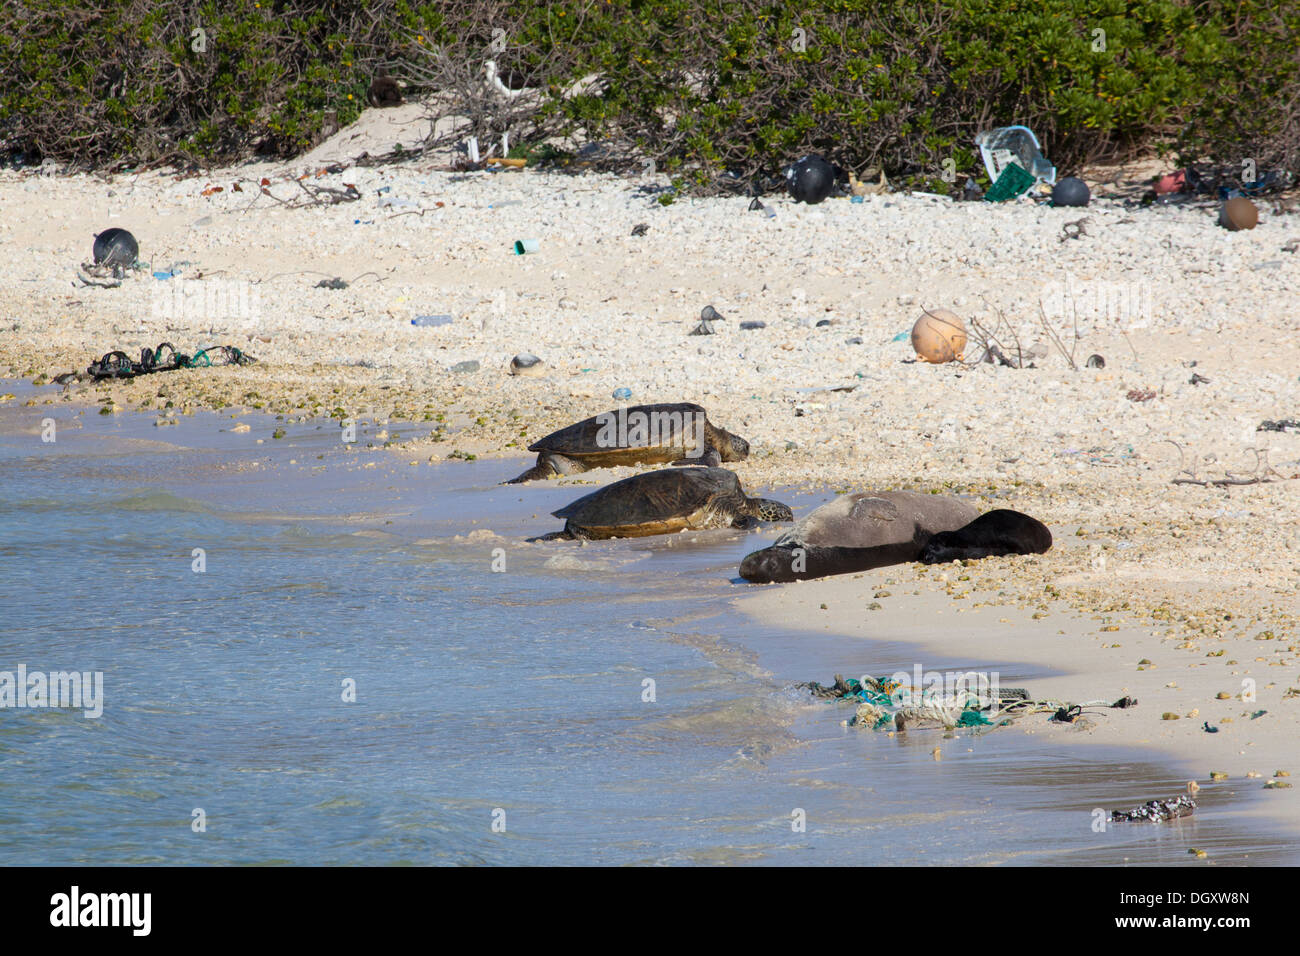 Hawaiian Monk Seal (Neomonachus schauinslandi) mother, baby and Sea Turtles (Chelonia mydas) bask on North Pacific island beach with marine debris - Stock Image